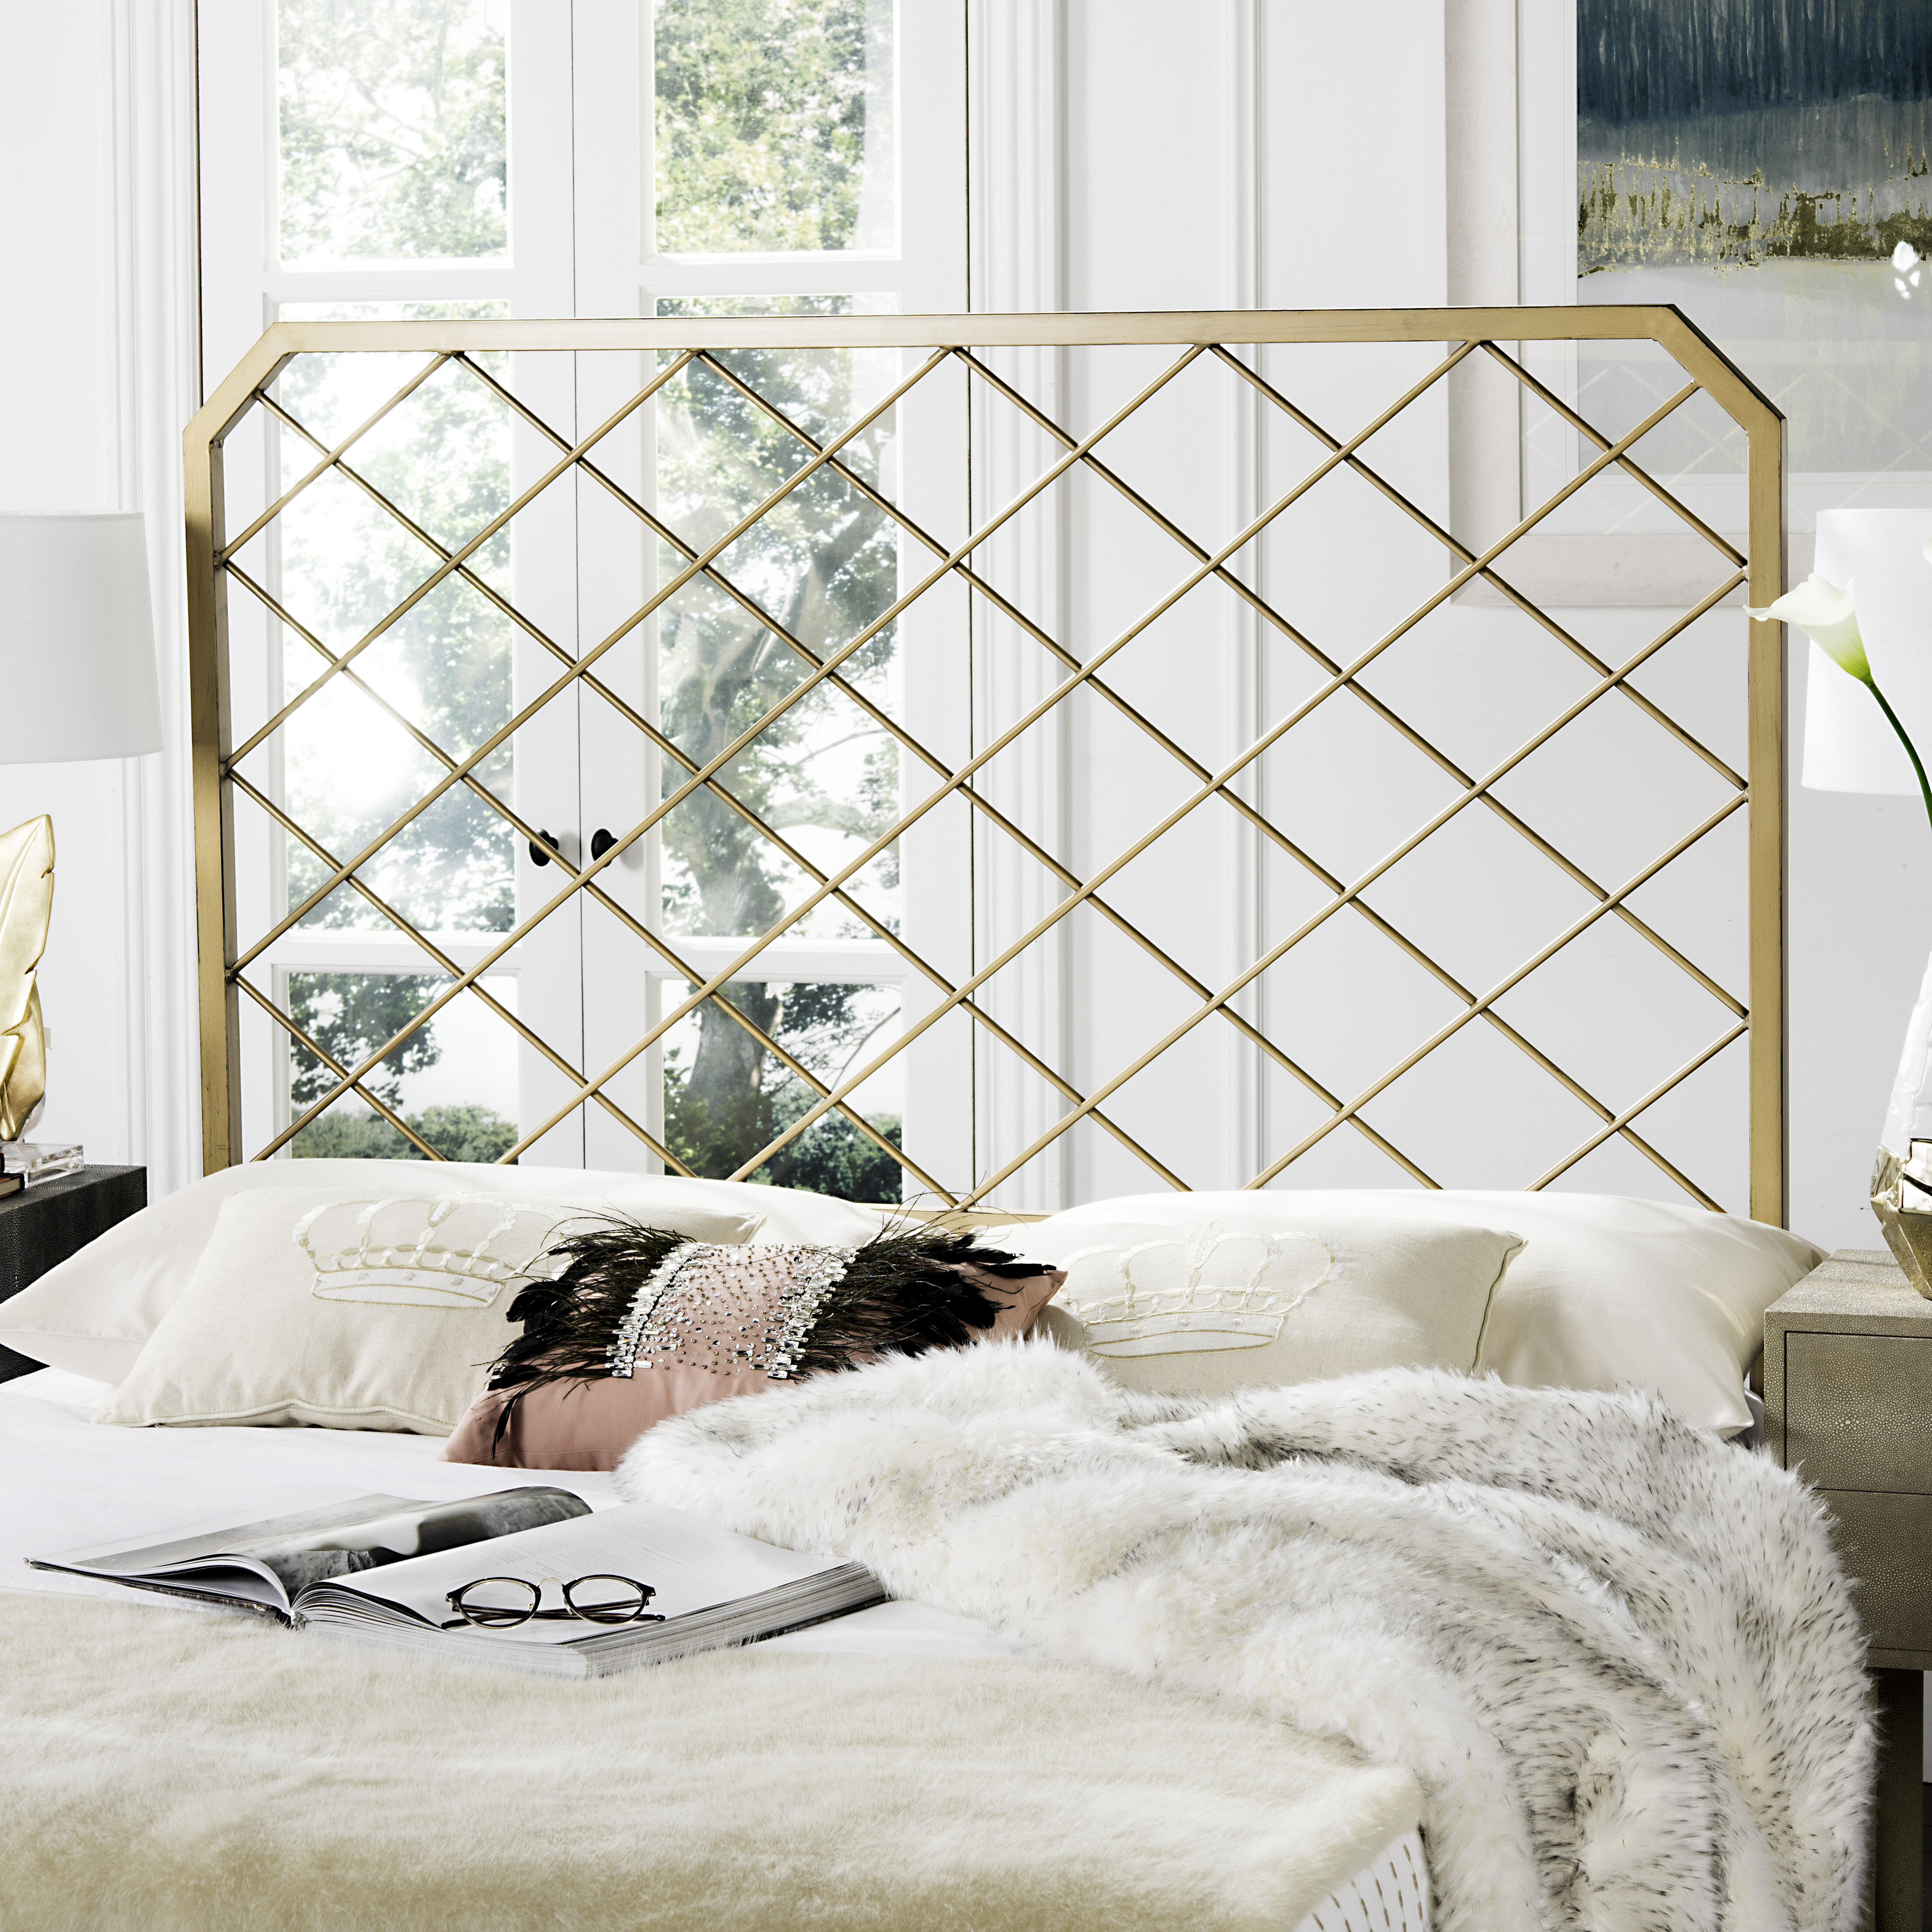 chic bedroom for winged using furniture headboards queen upholstered joss headboard bed tufted upholster velvet skyline tremendous main ideas wingback reviews and beds